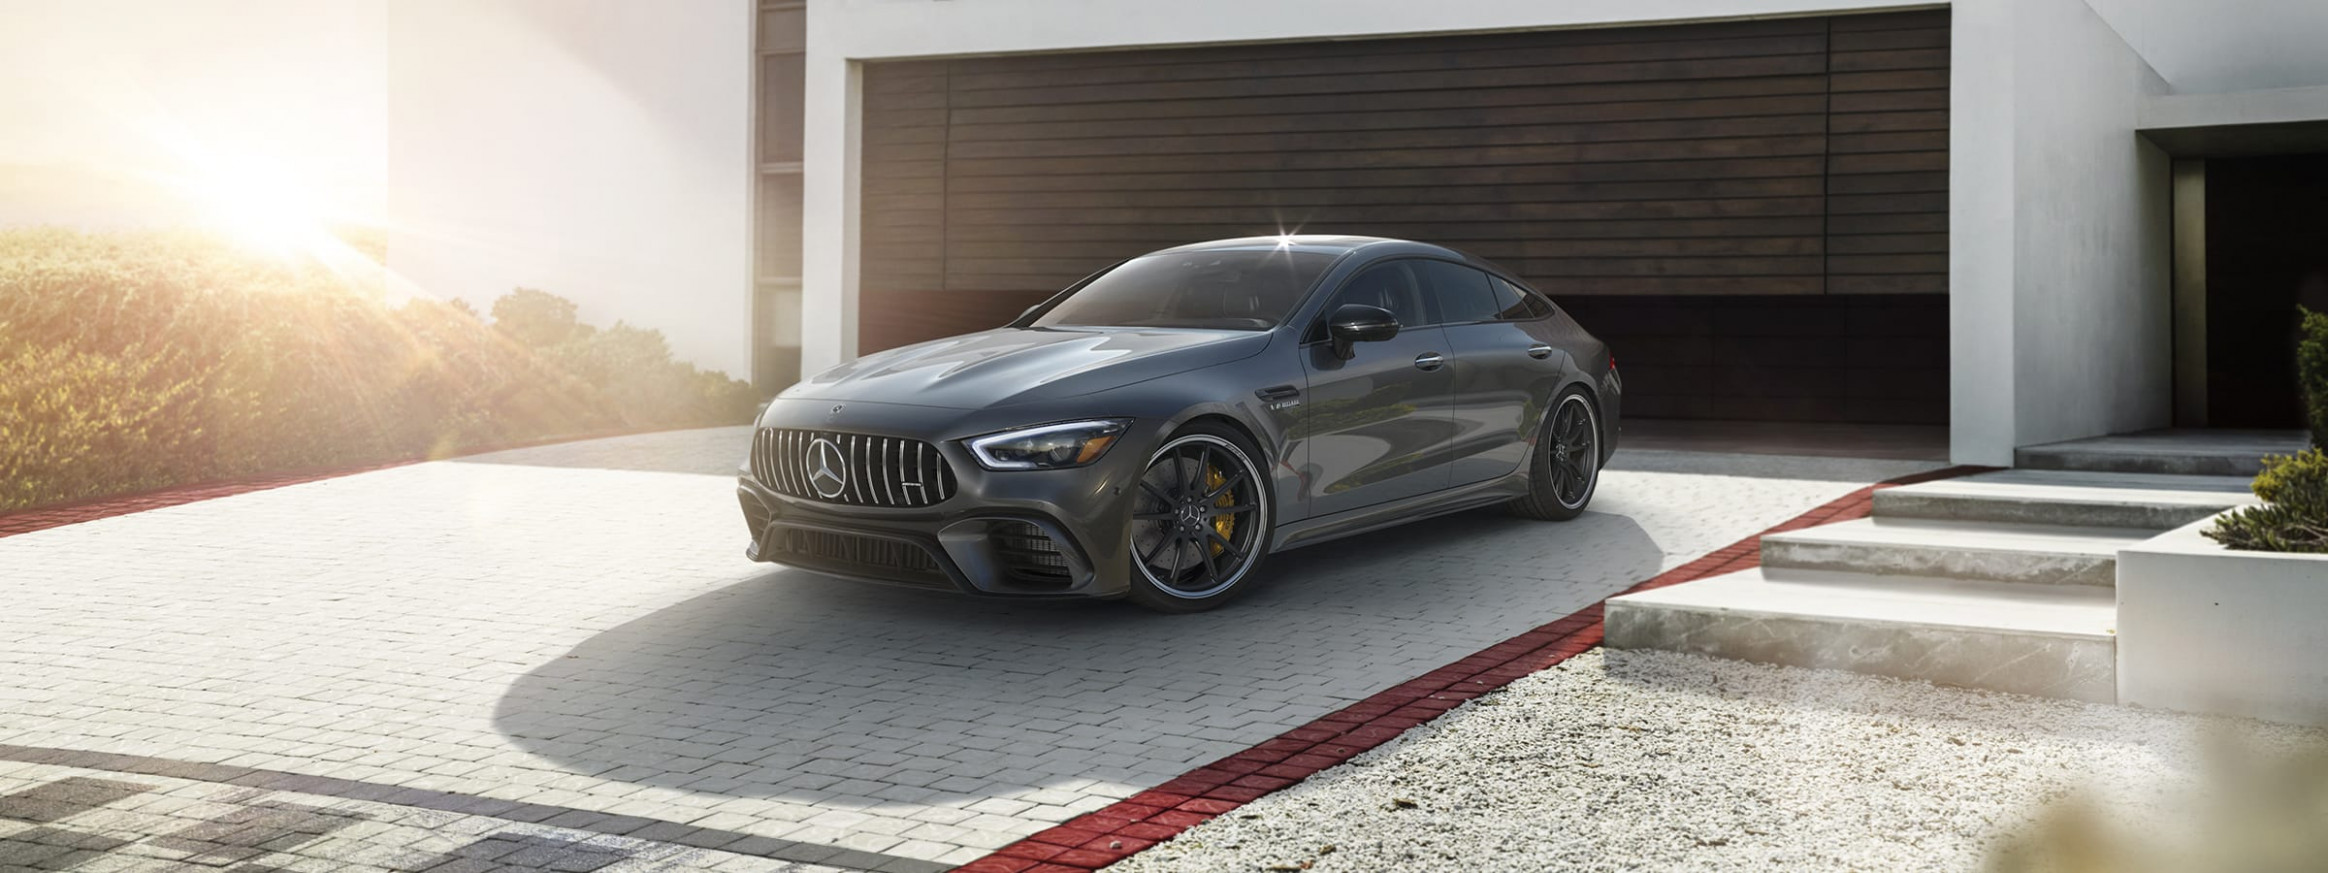 GT 8-door | Mercedes-Benz USA - 2020 mercedes amg gt 4 door coupe